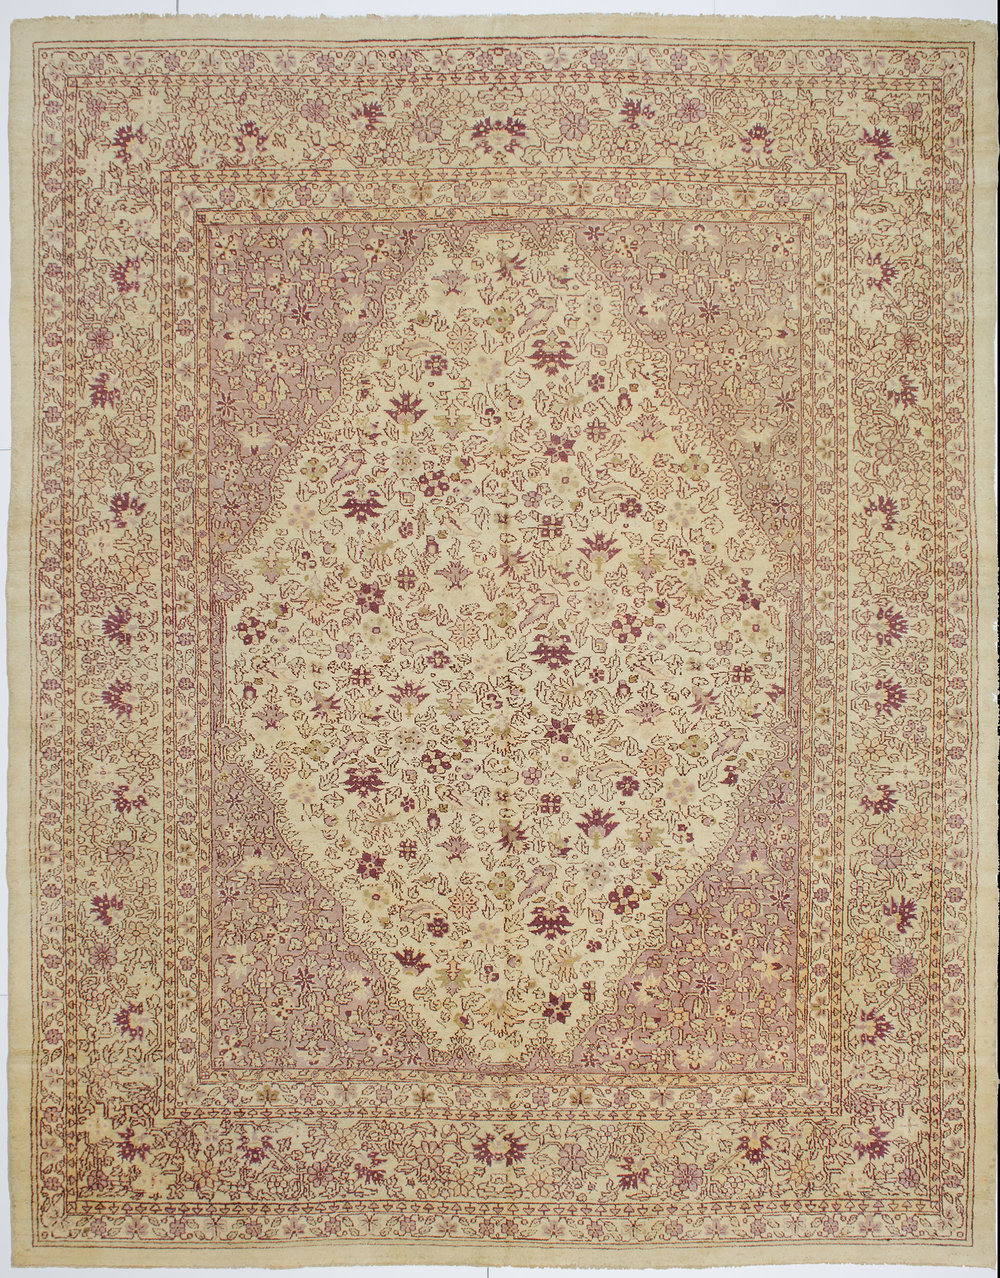 "Amritsar Carpet 11' 7"" x 9' 0"""